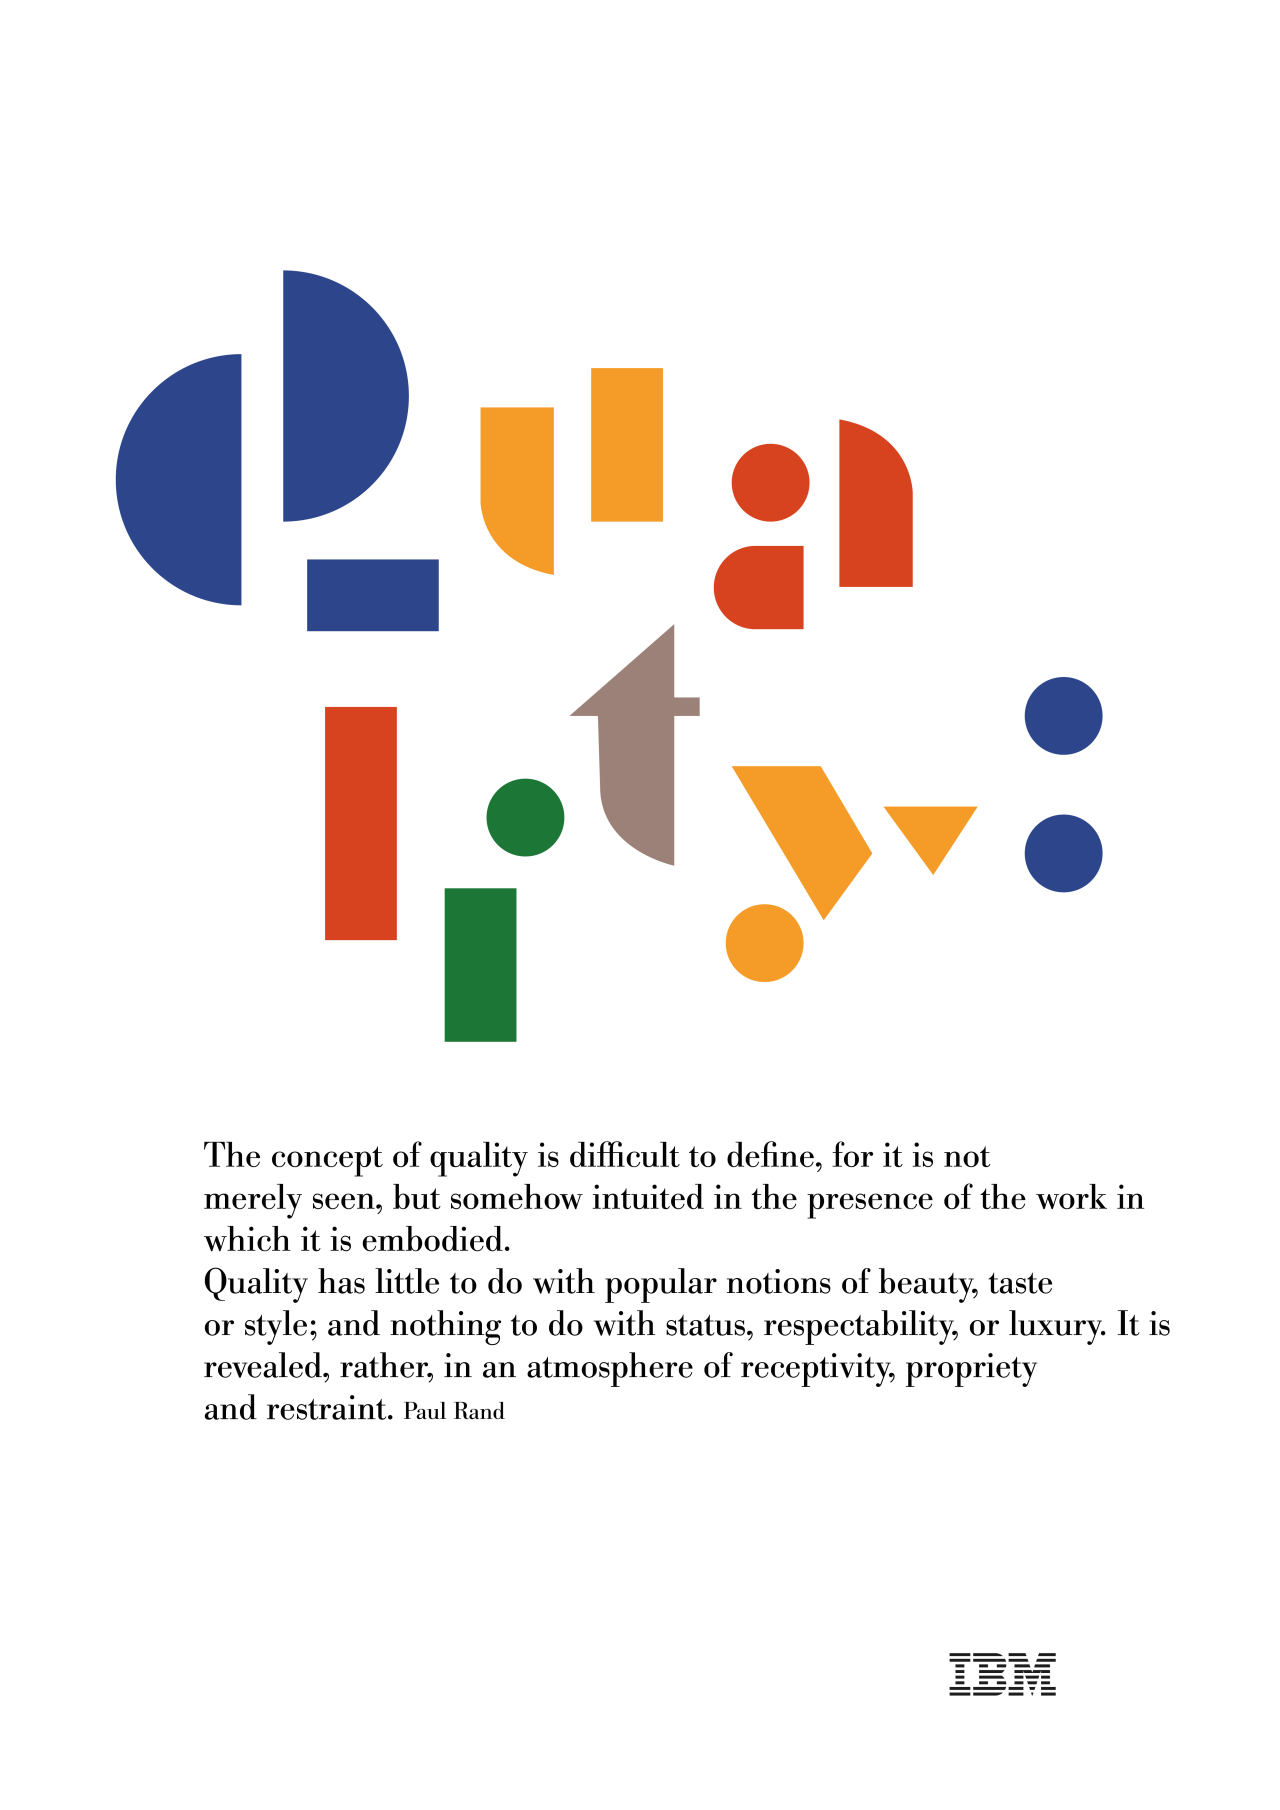 Paul Rand, of course. History design, Ibm design, Lettering